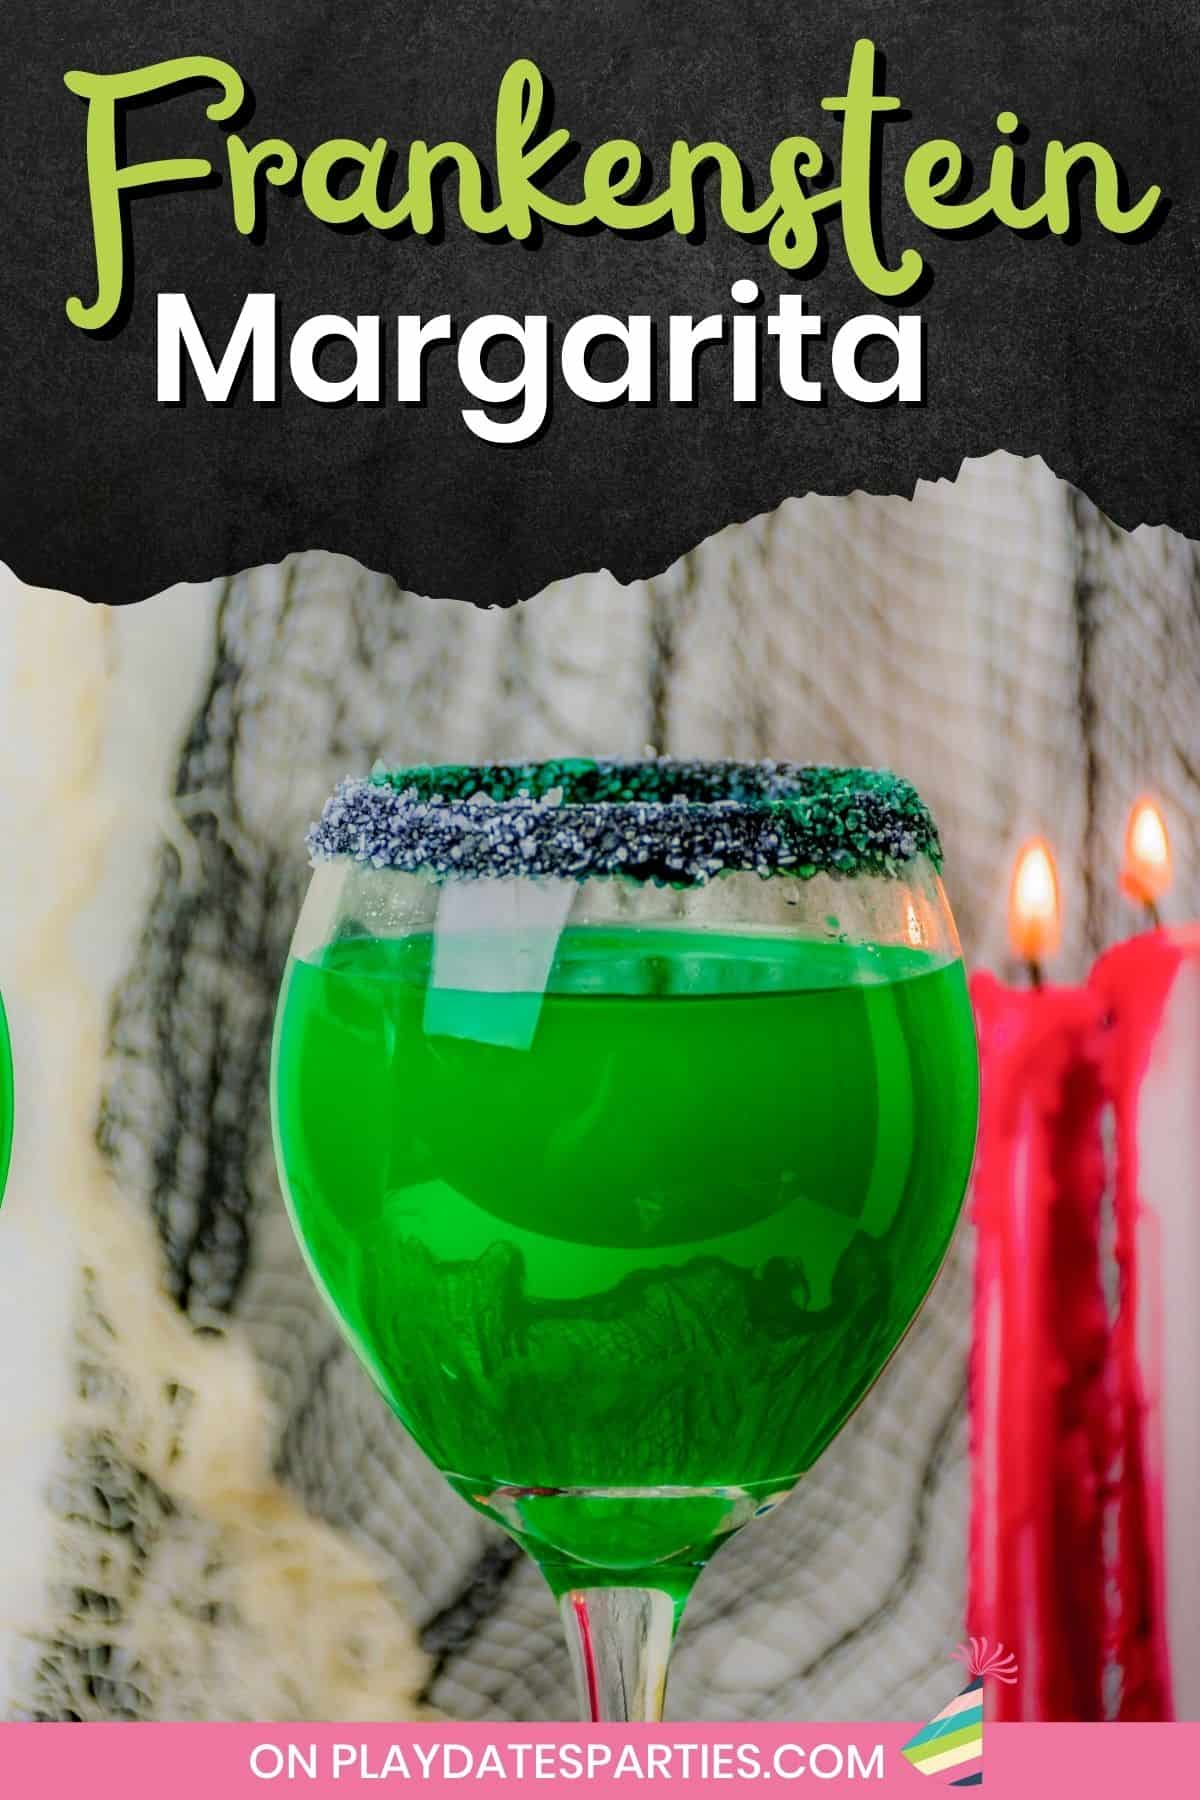 Close up of a wine glass rimmed with black and white margarita salt, and filled with a green cocktail.